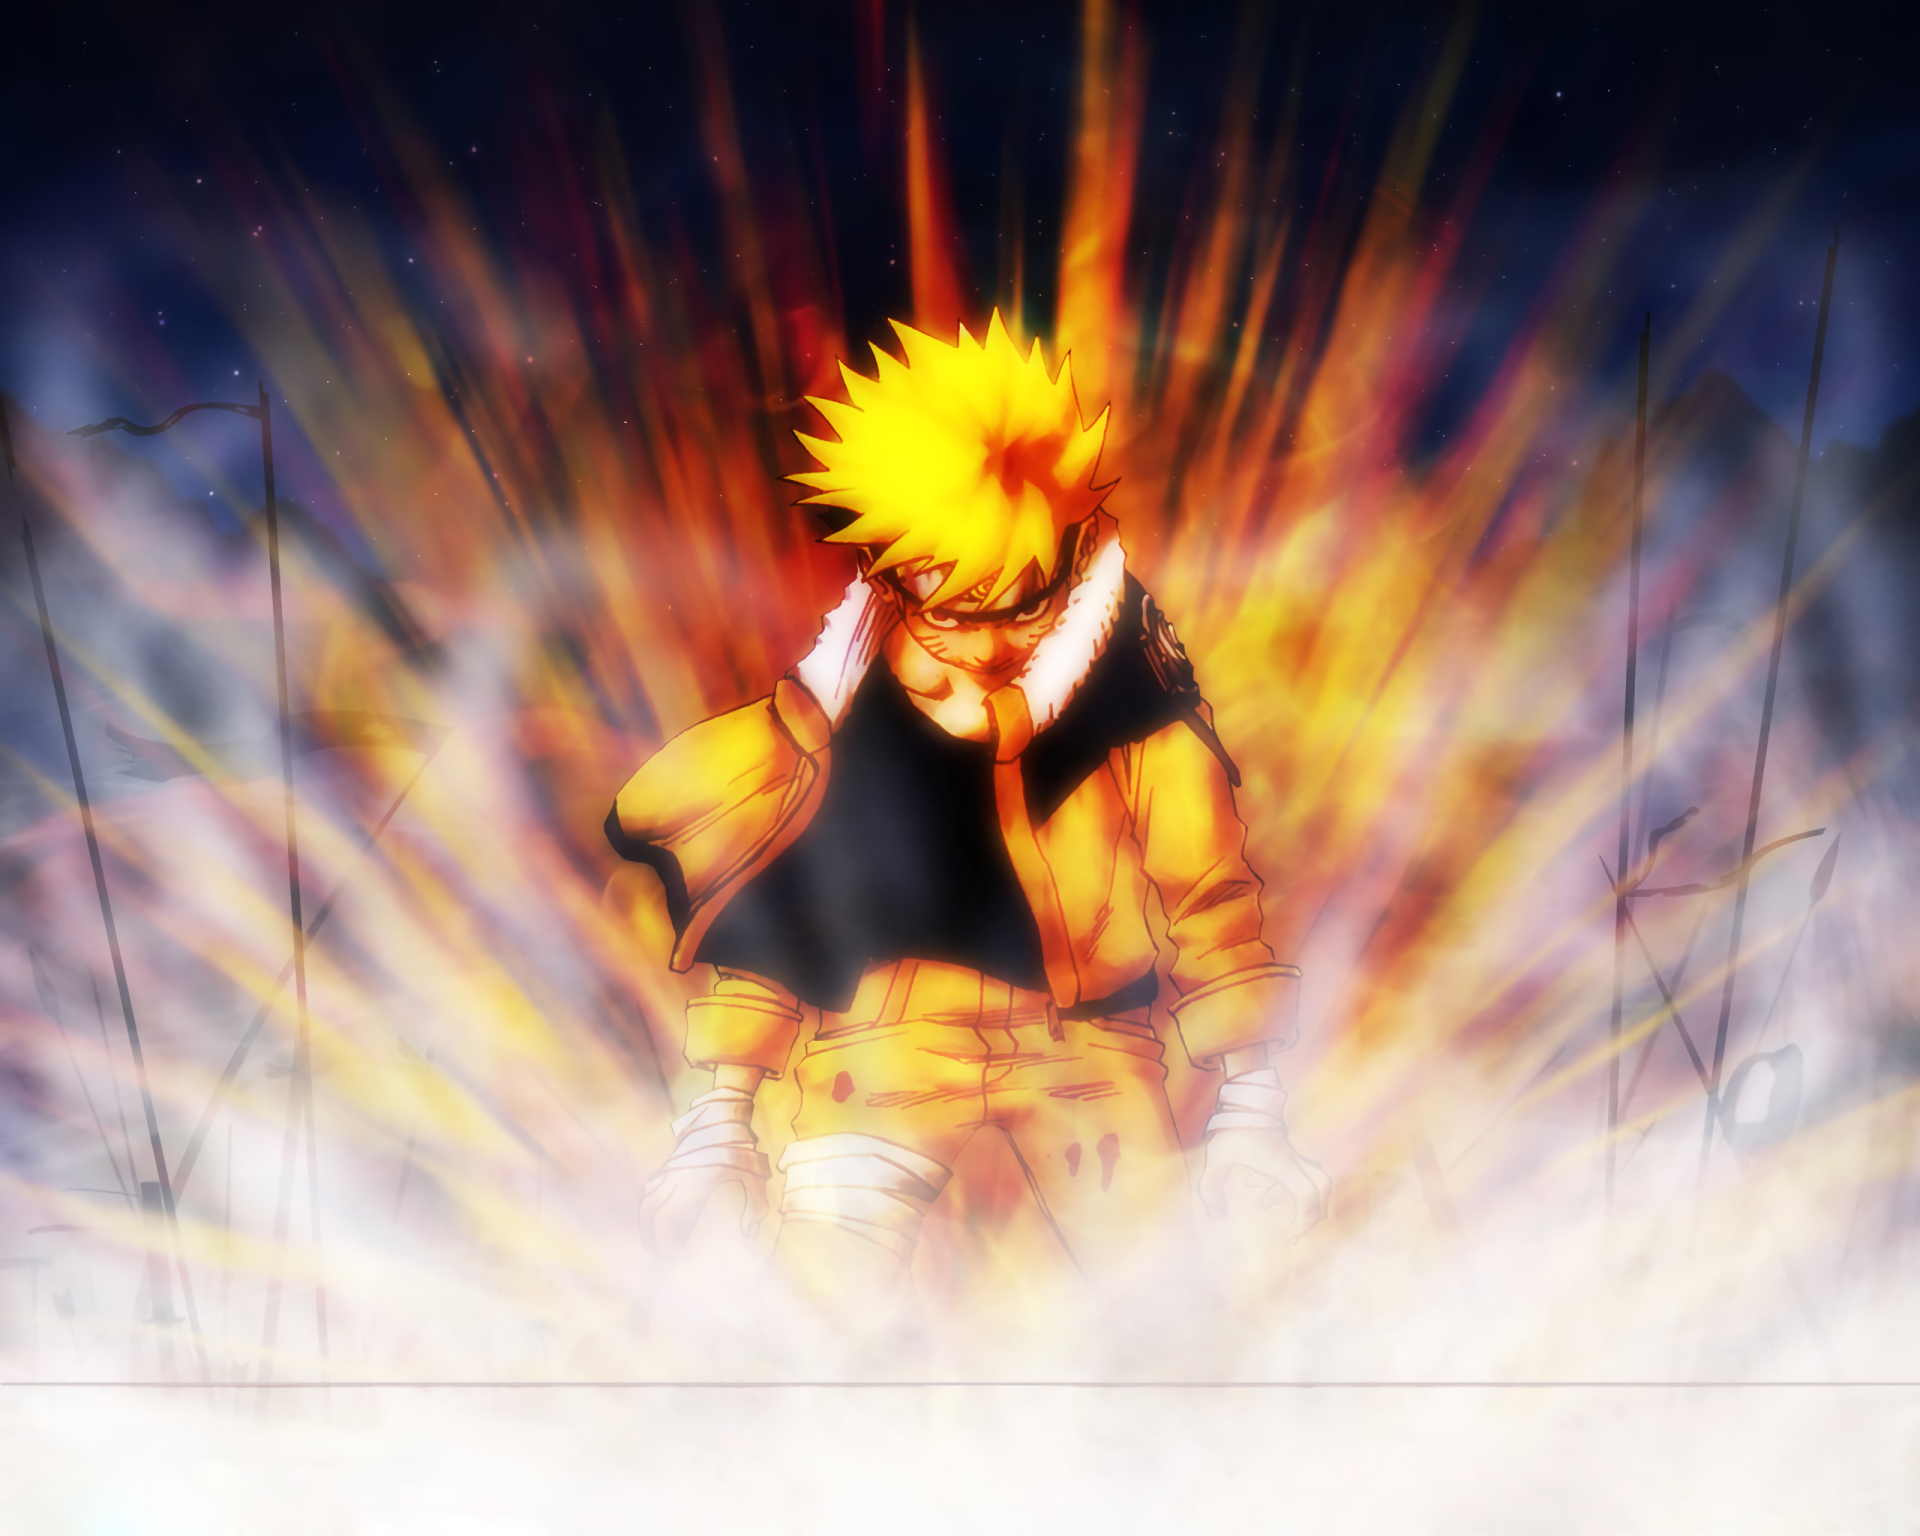 Anime - Naruto  Naruto Uzumaki Anime Wallpaper